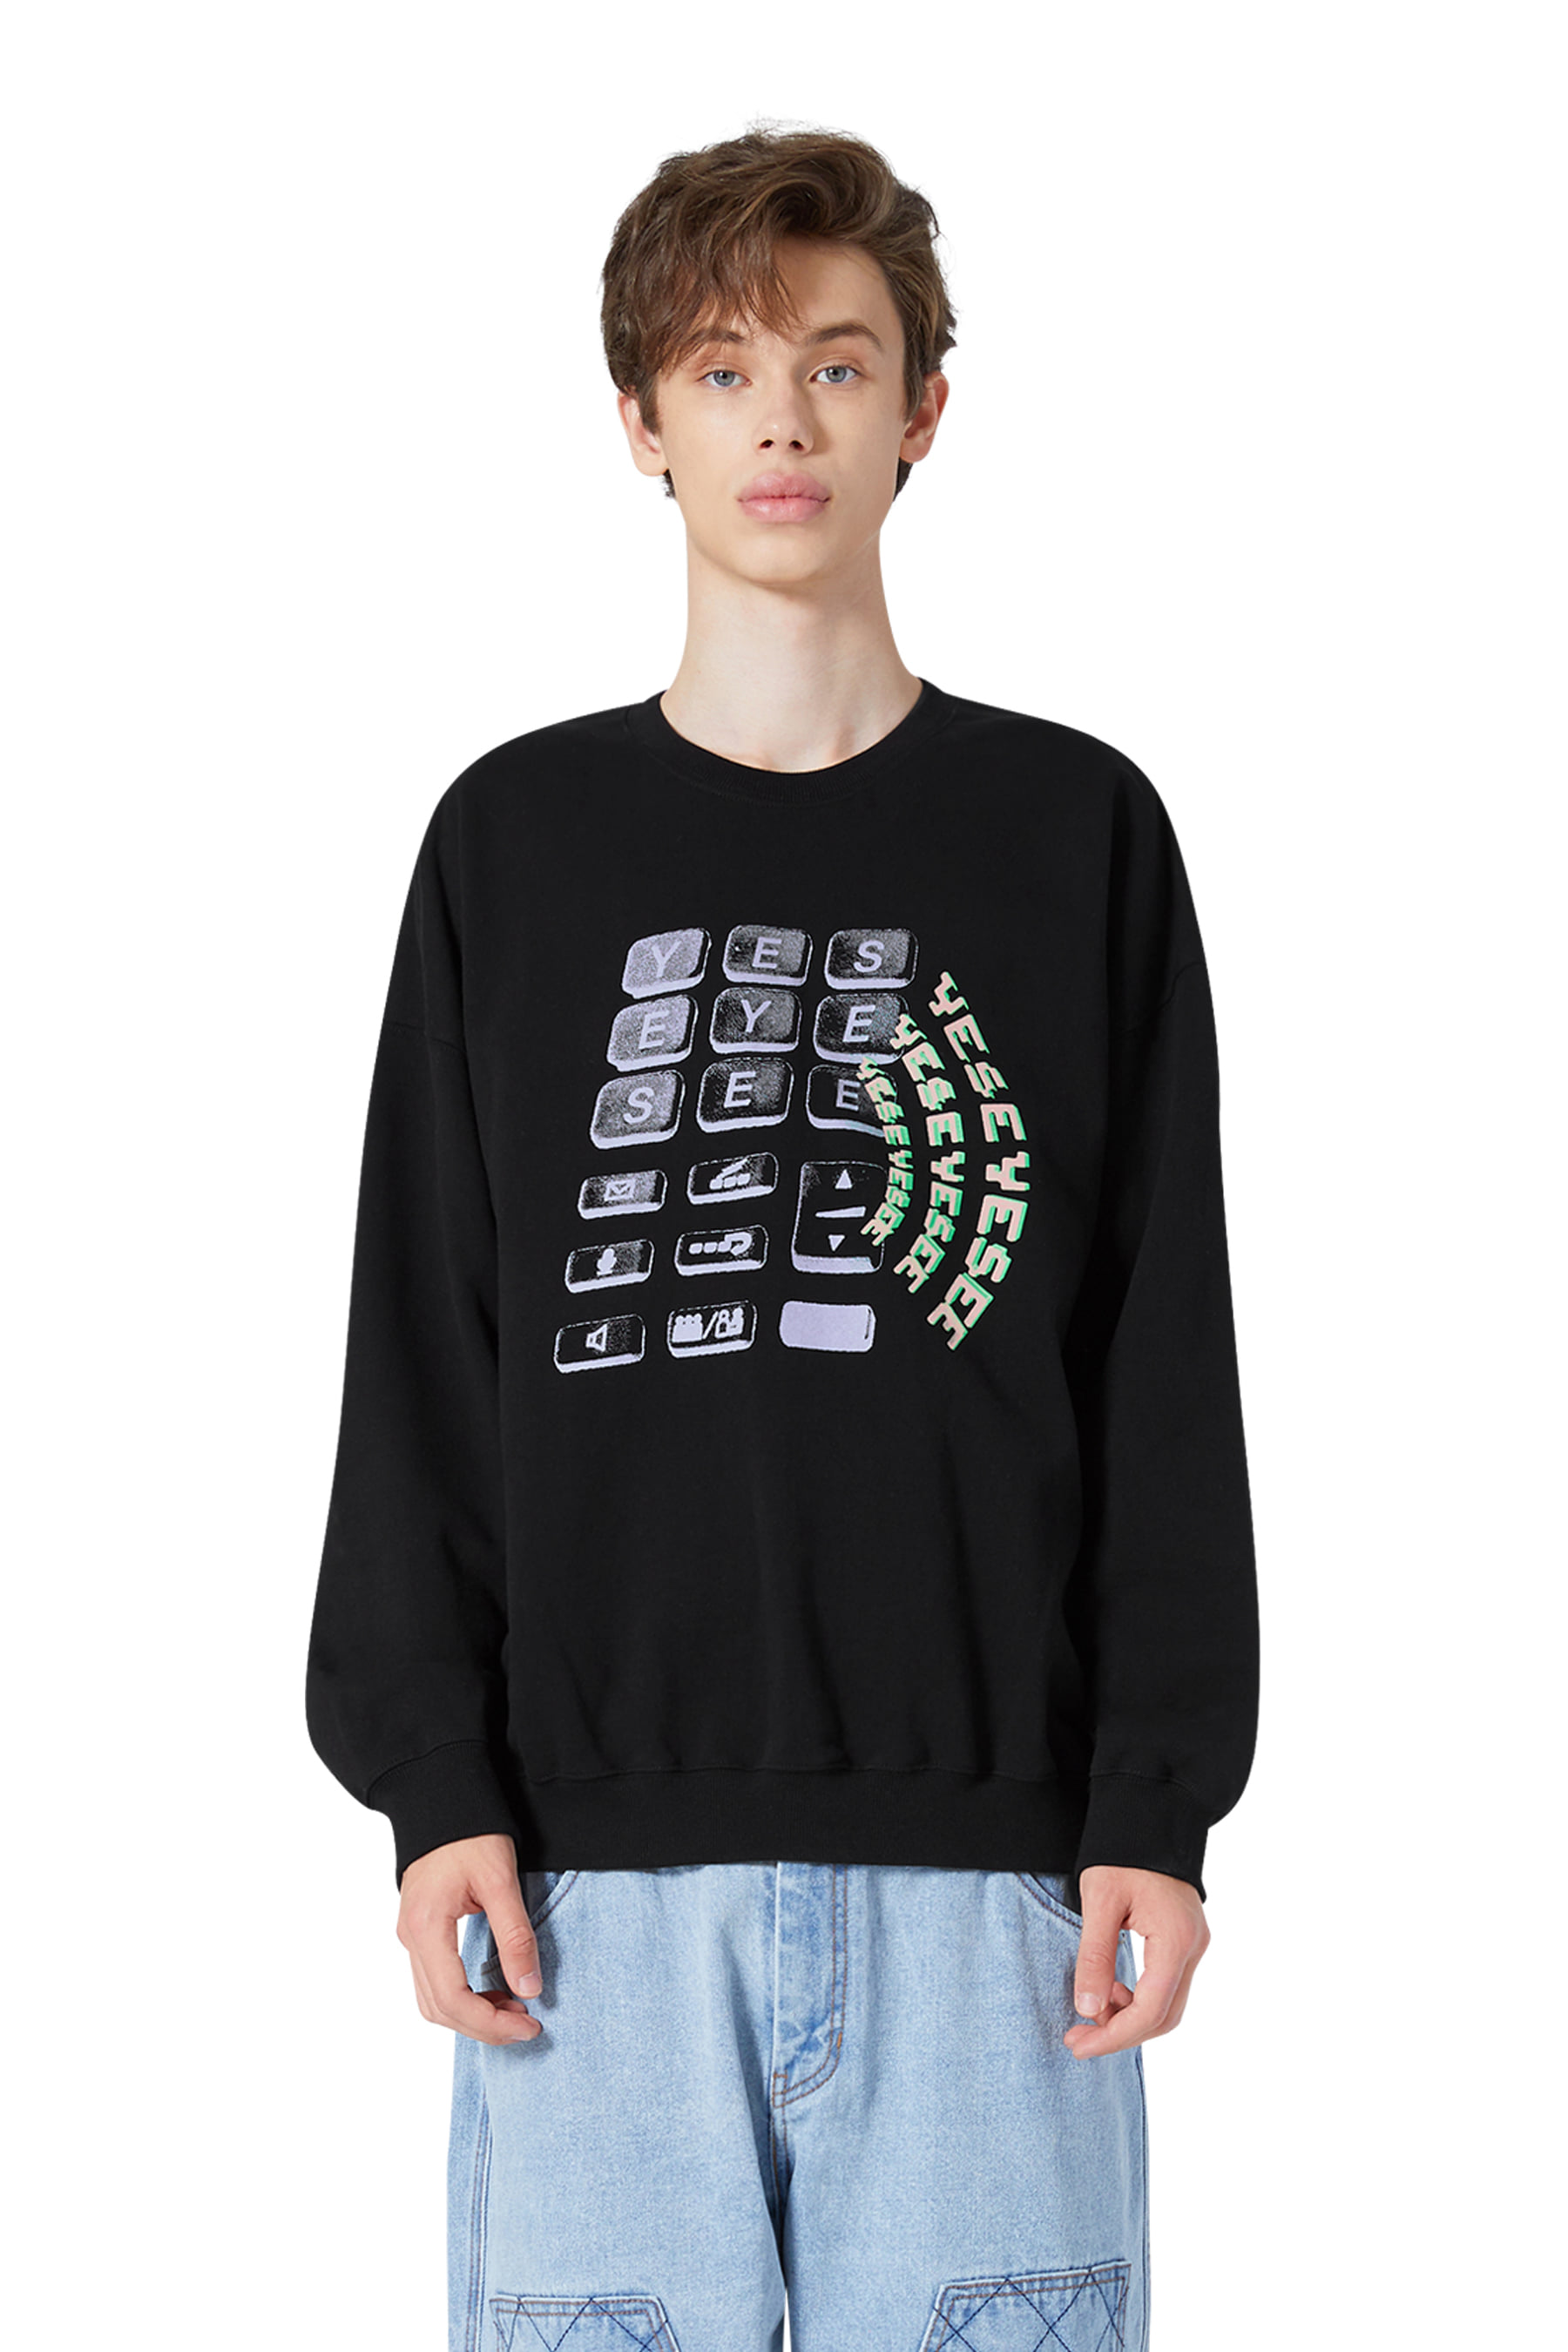 Y.E.S Wifi Sweatshirts Black